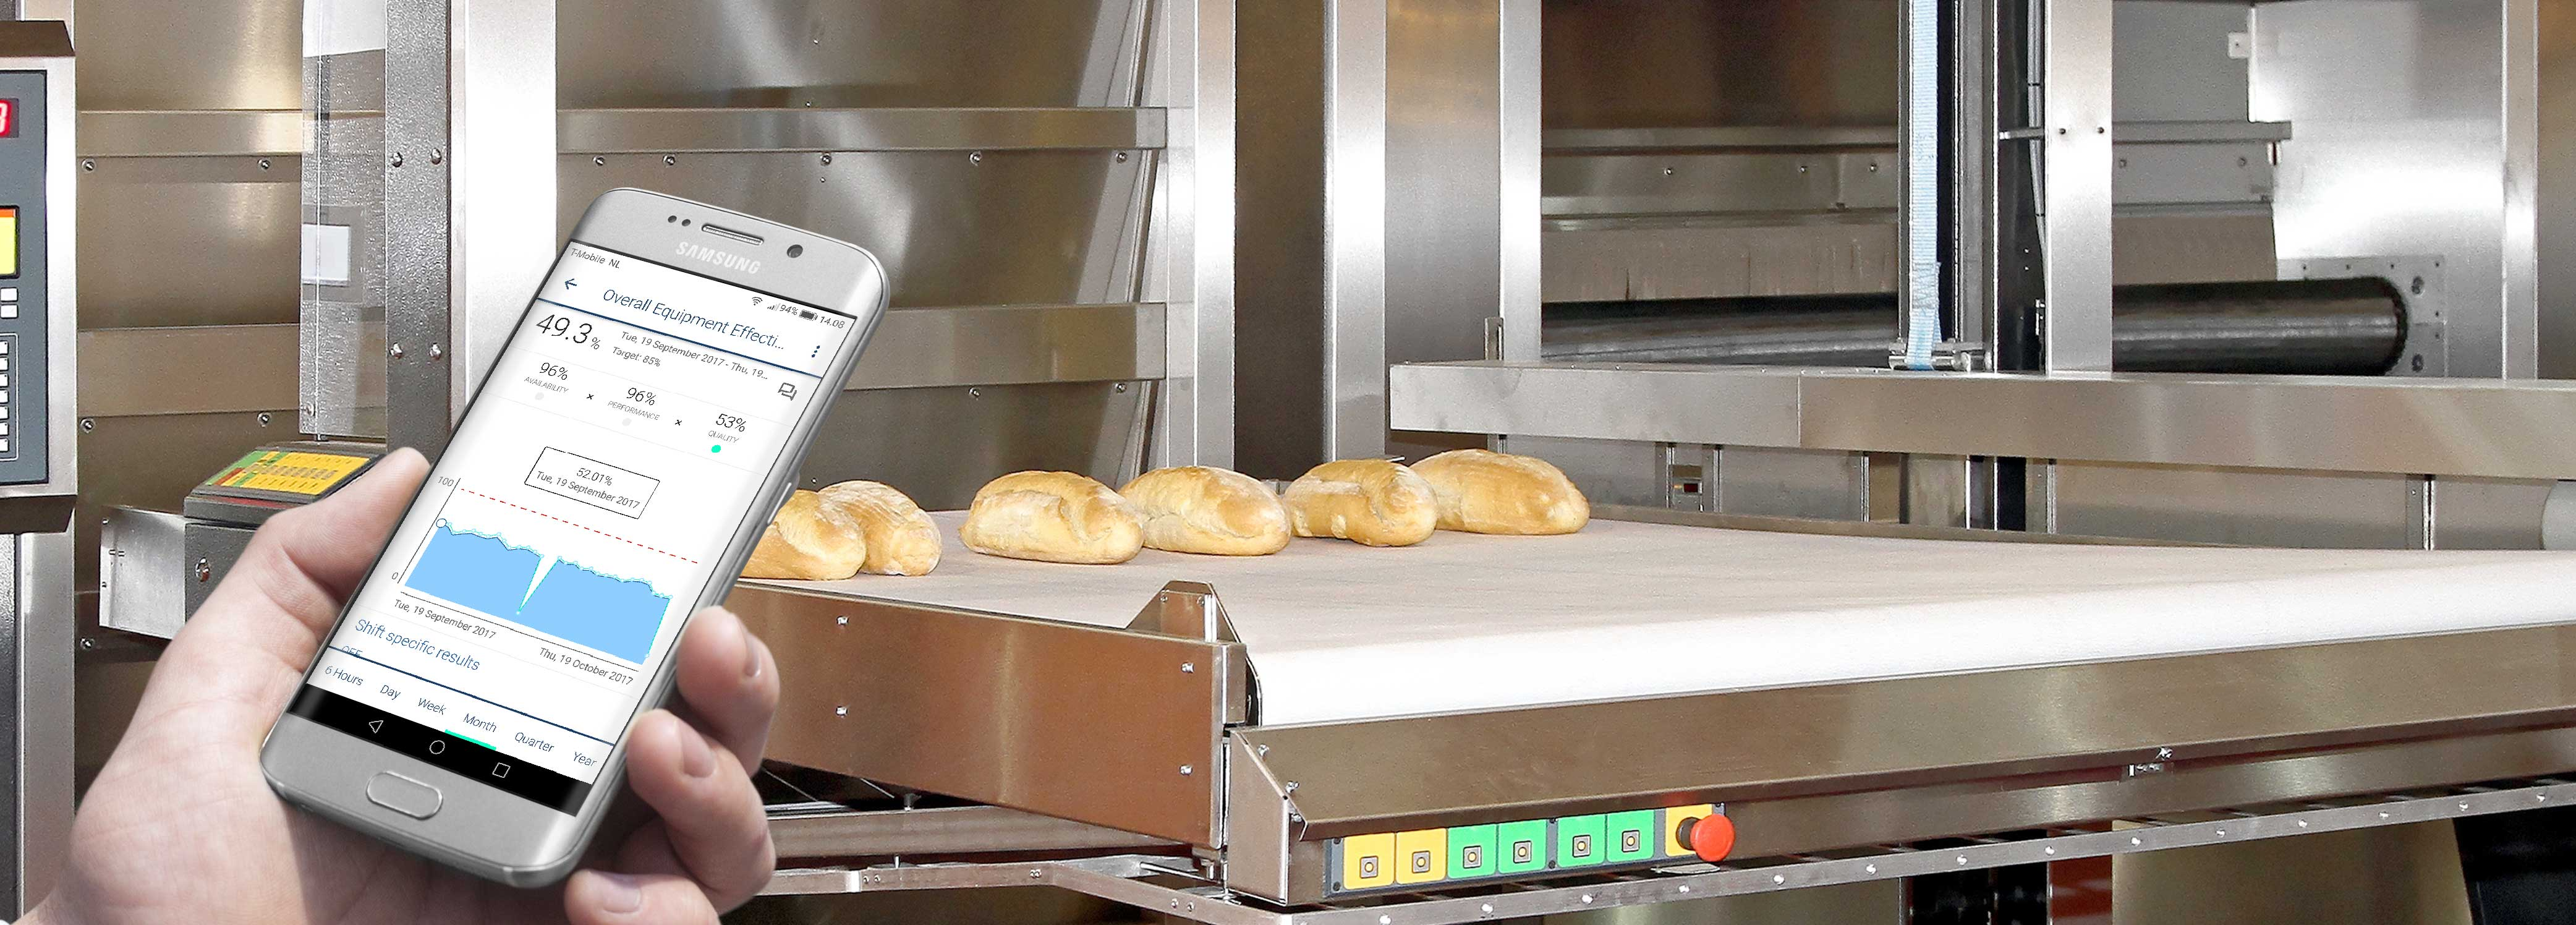 Bakery lines are more efficient when monitoring OEE with innius